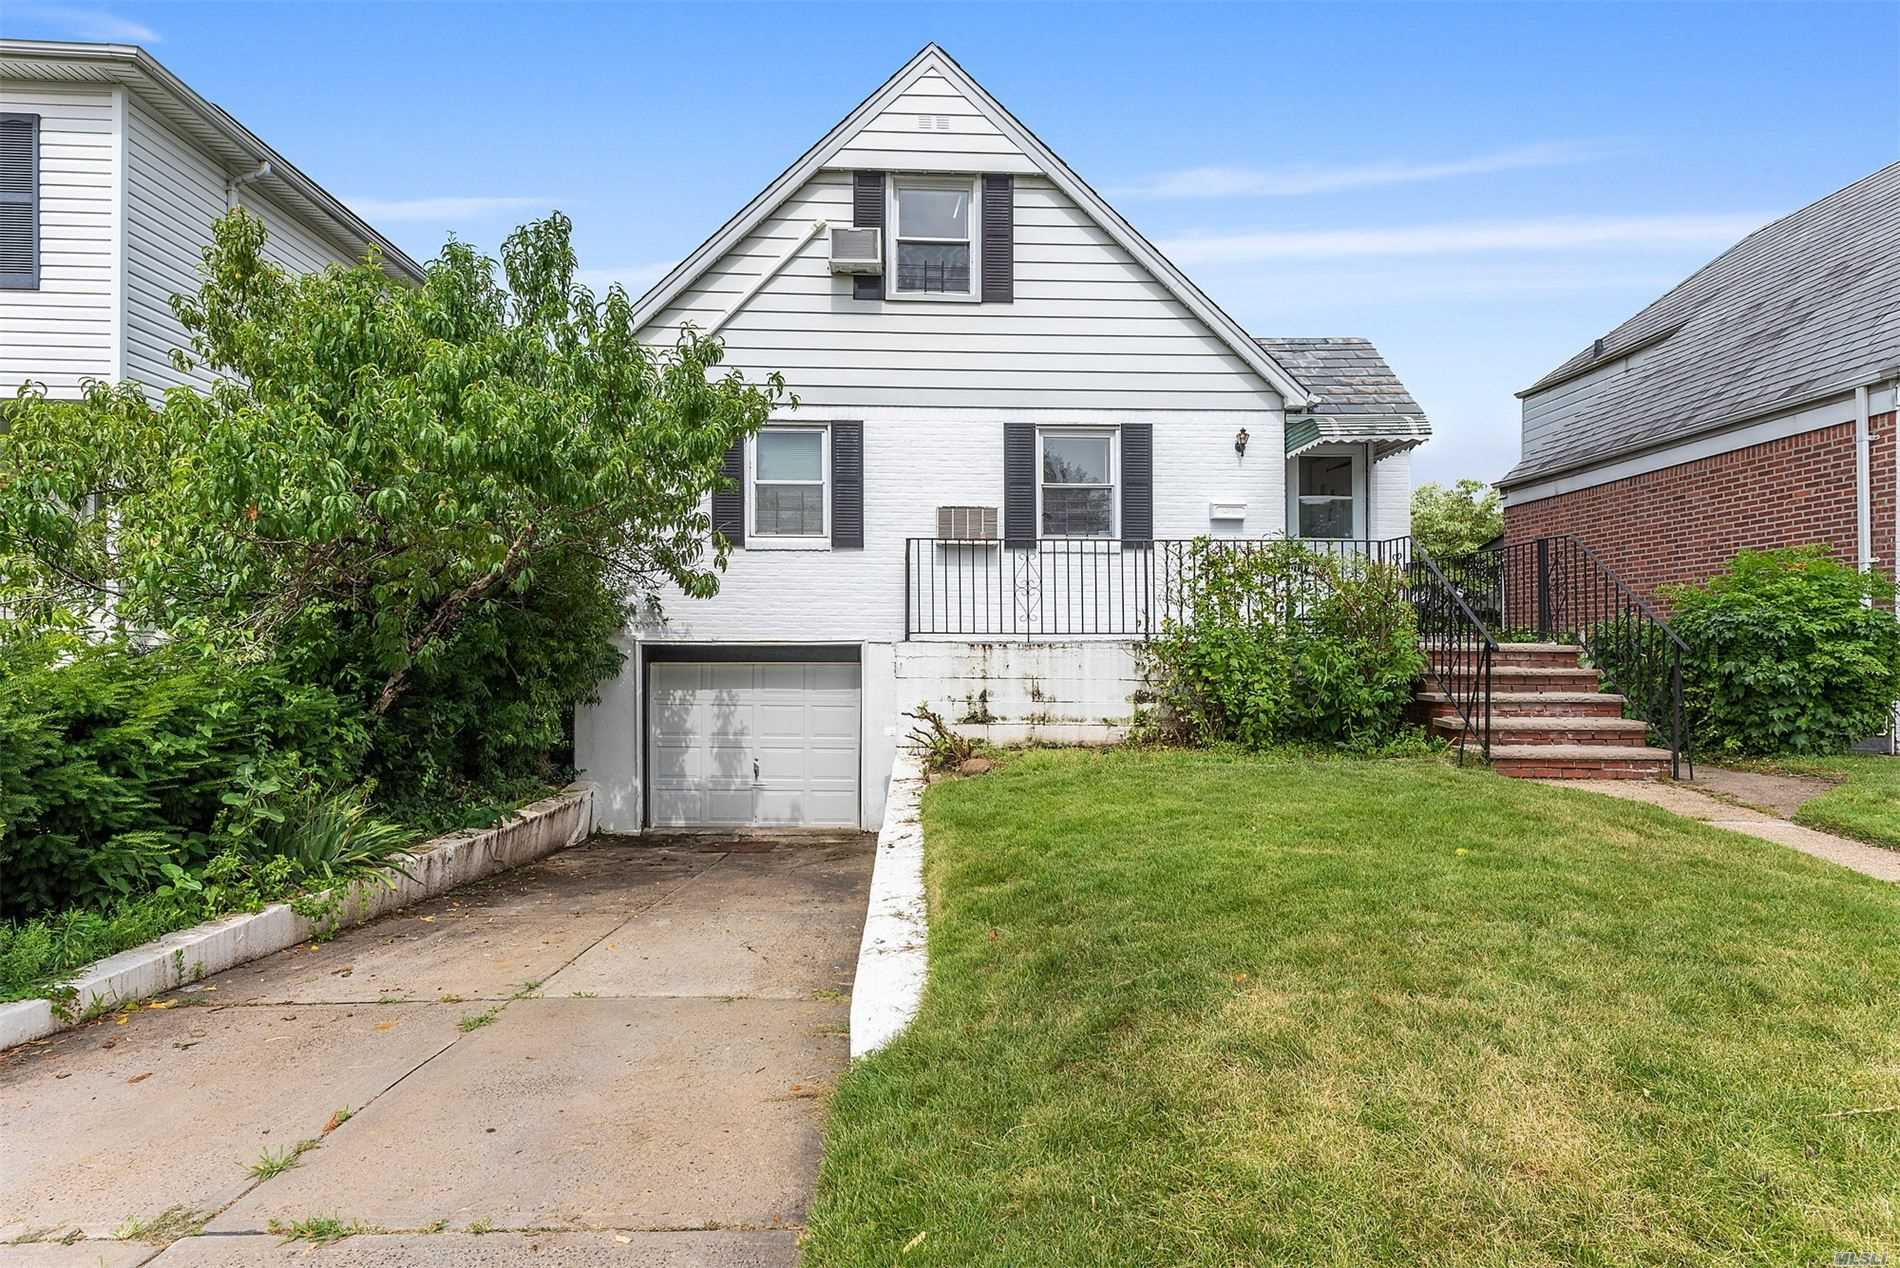 Moving in condition 1 family in the prime area of Fresh Meadow, 3 Bedroom 3 Full bath sitting on 40X100 lot with basement and garage, Must See!